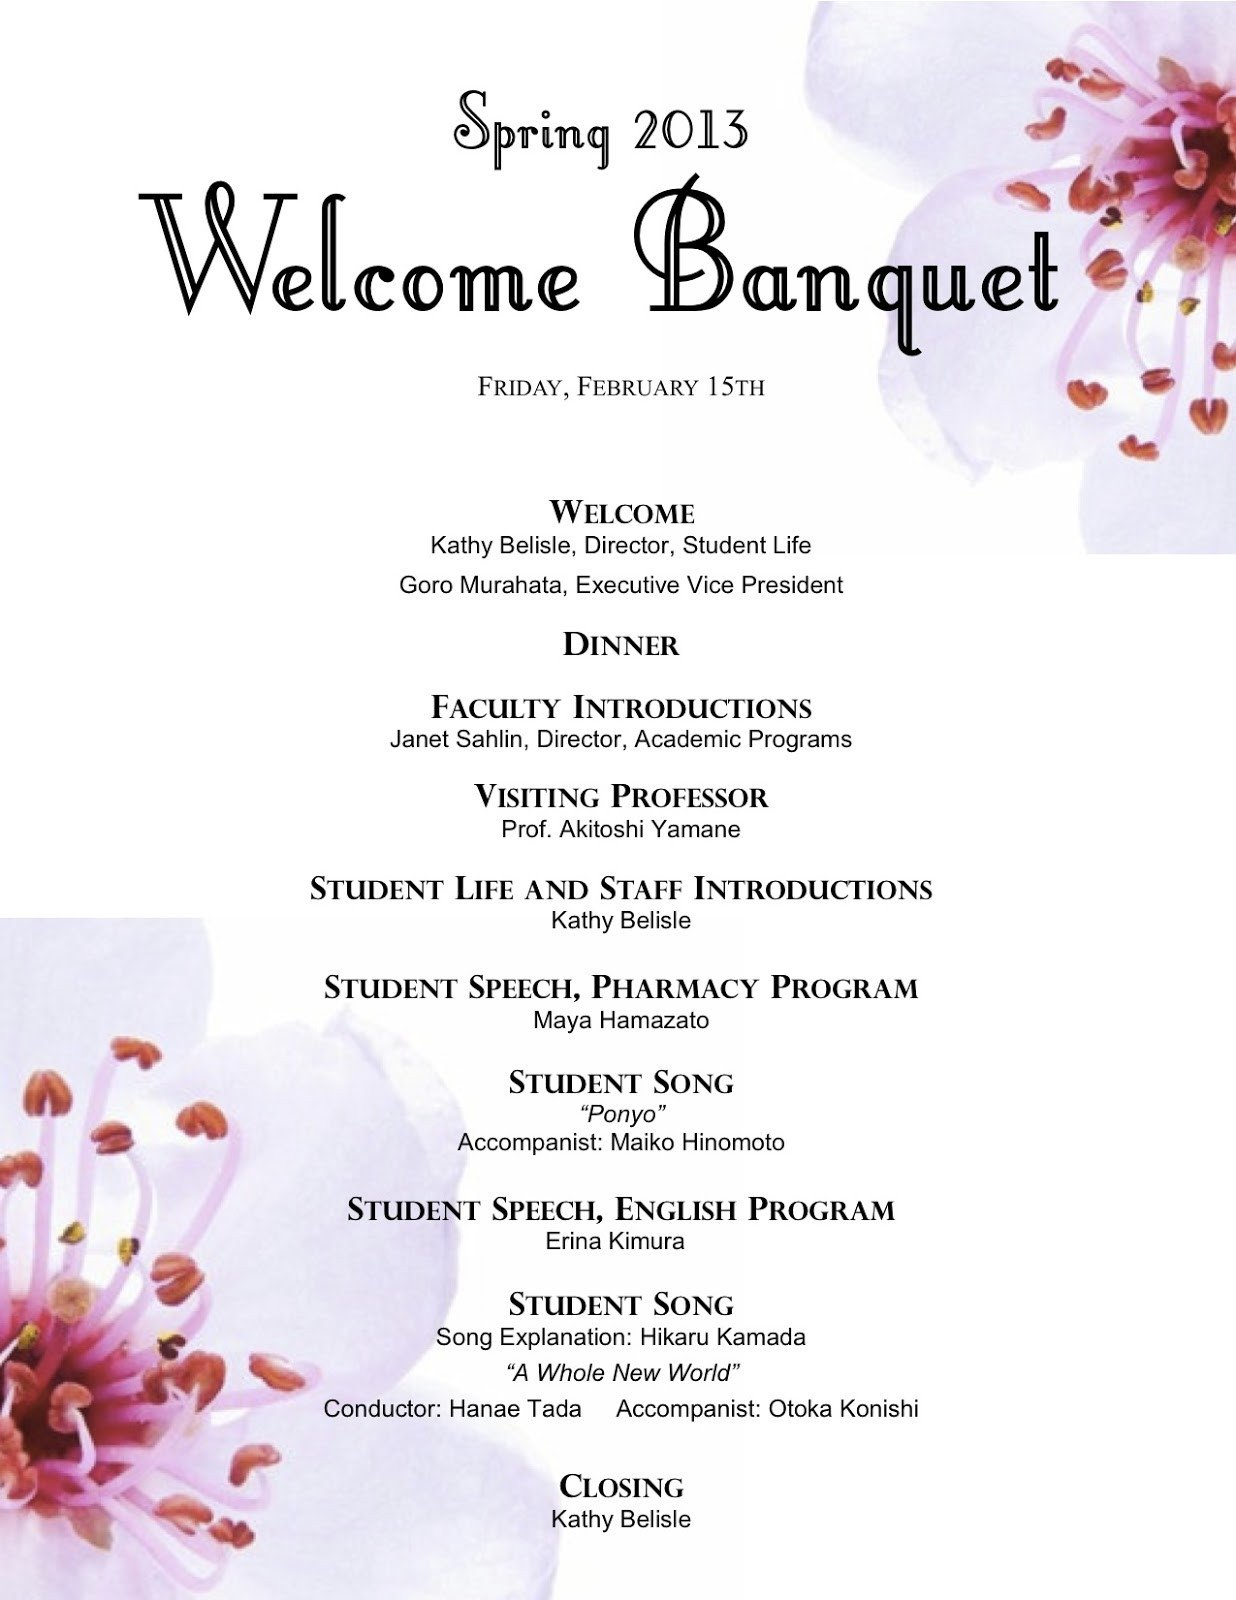 Family Reunion Banquet Program Sample Cheerful Wel E Banquet 2